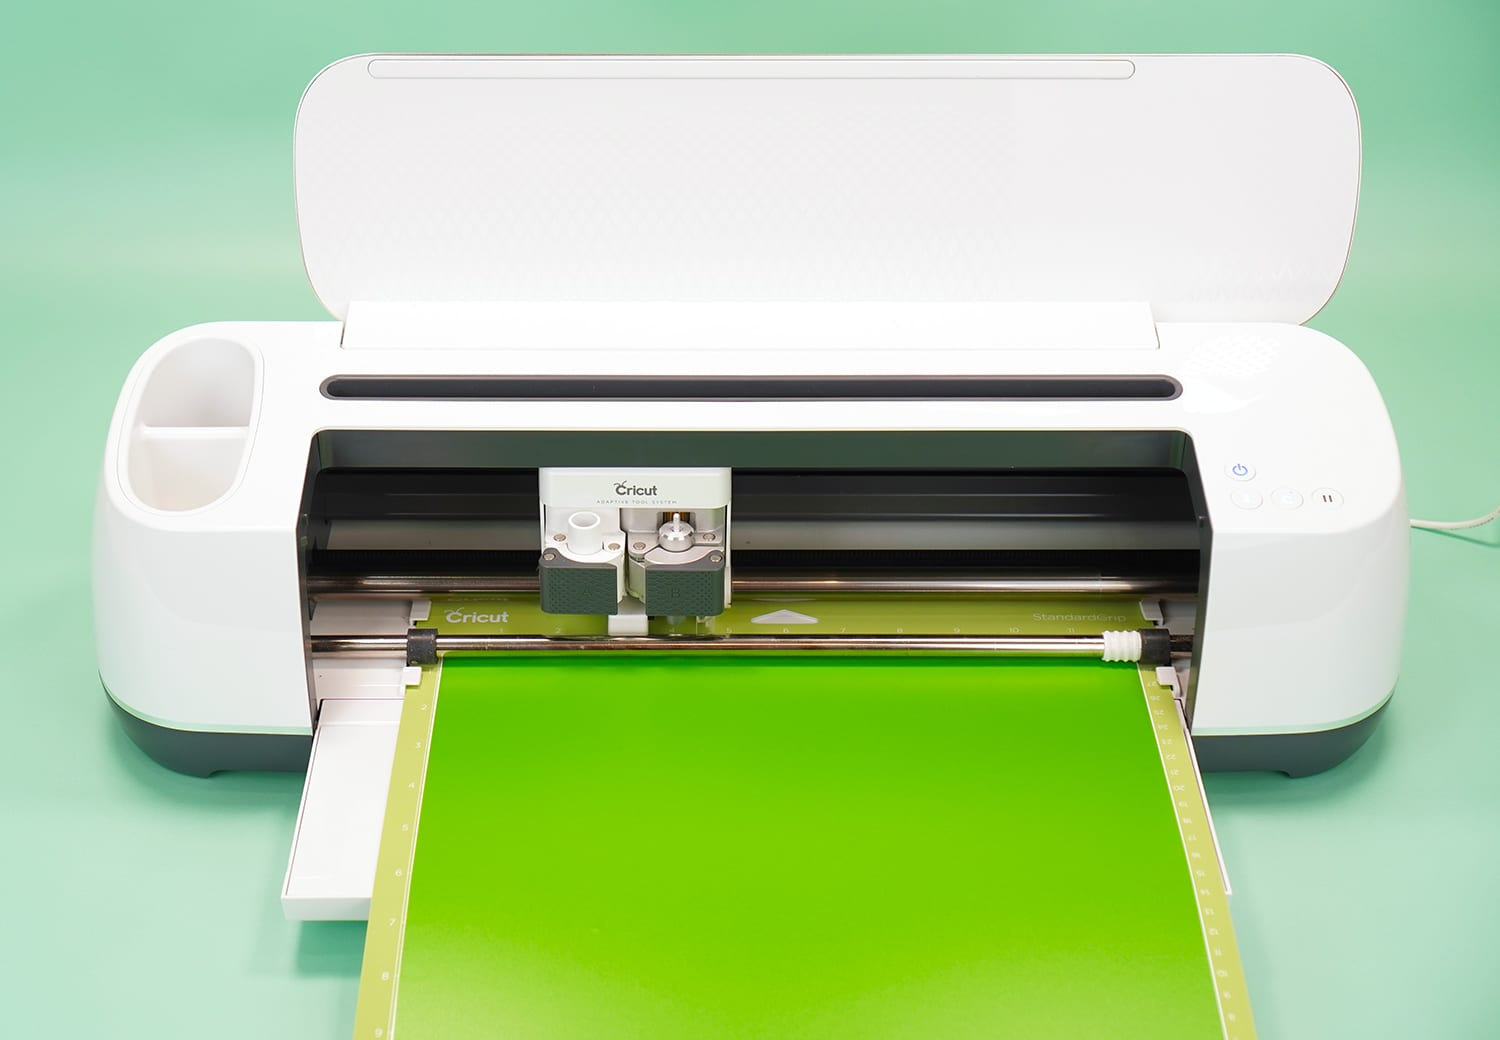 Cricut Maker machine with lime green vinyl on mat on mint green background